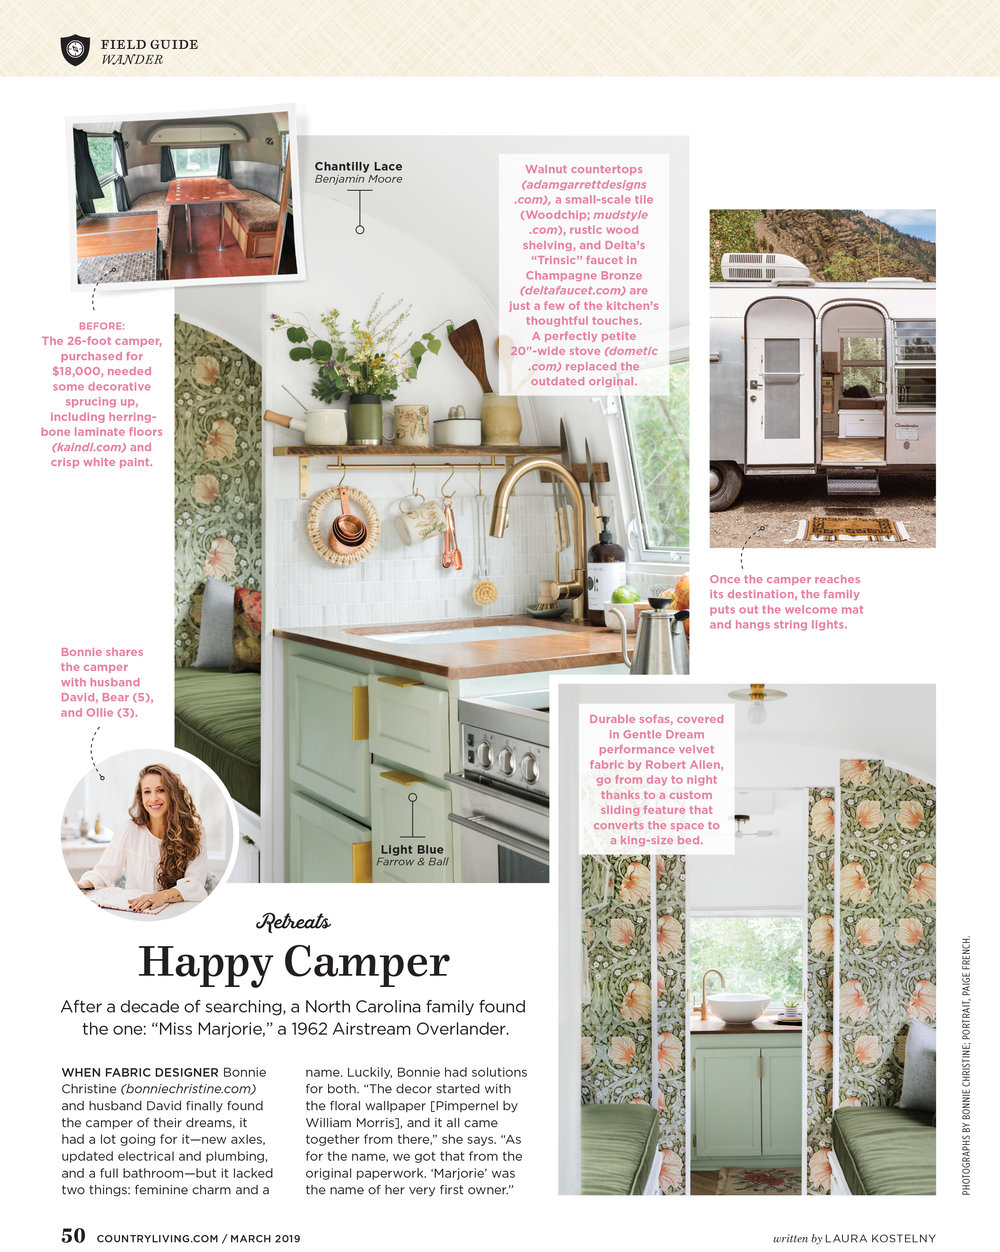 thanks to Country Living magazine for using my portrait of designer Bonnie Christine - March 2019 issue